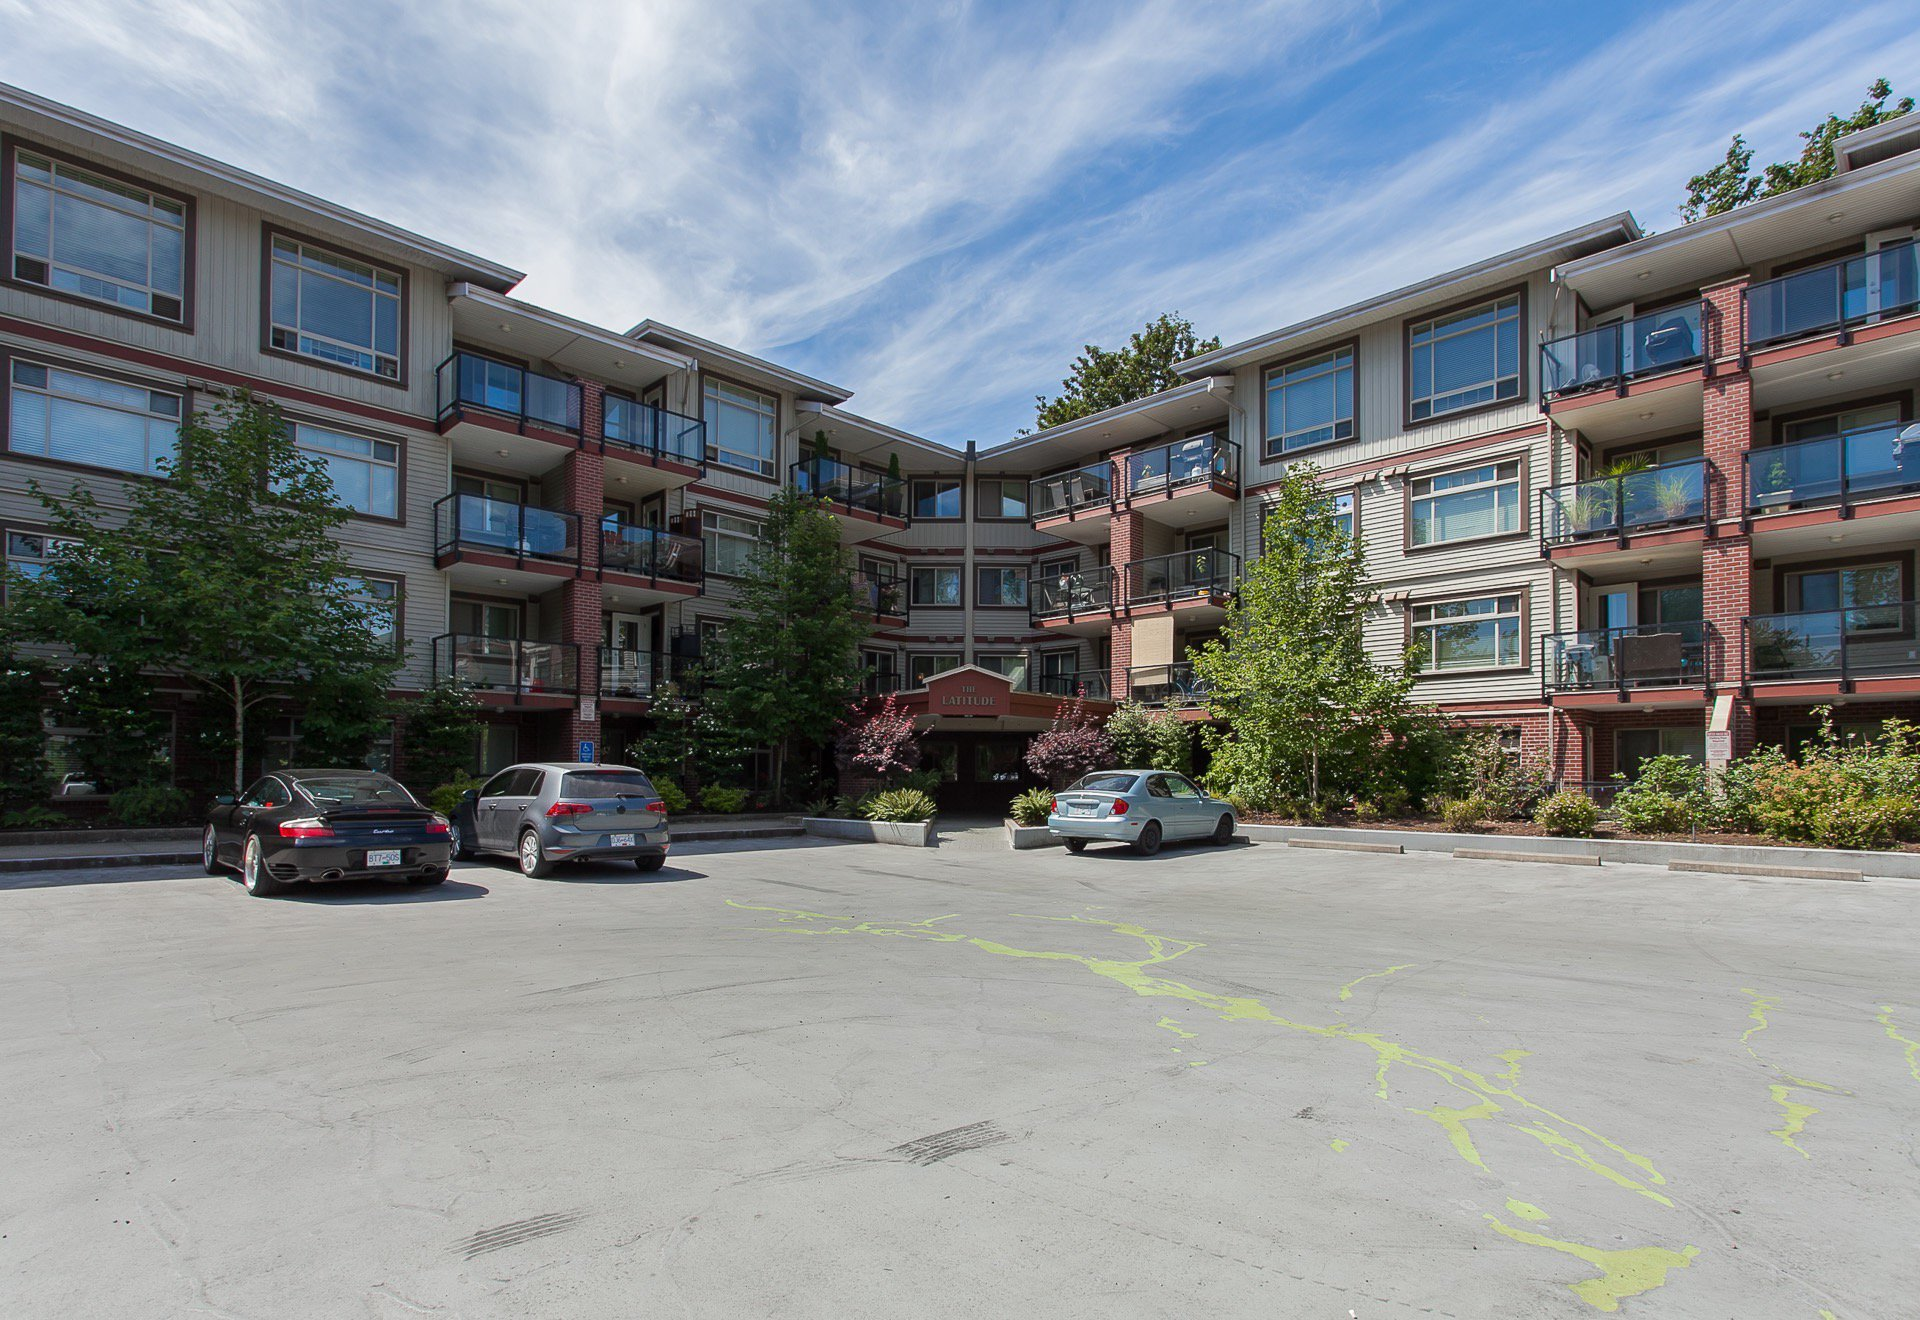 Main Photo: 118 2233 McKenzie in Abbotsford: Central Abbotsford Condo for sale : MLS®# R2387781